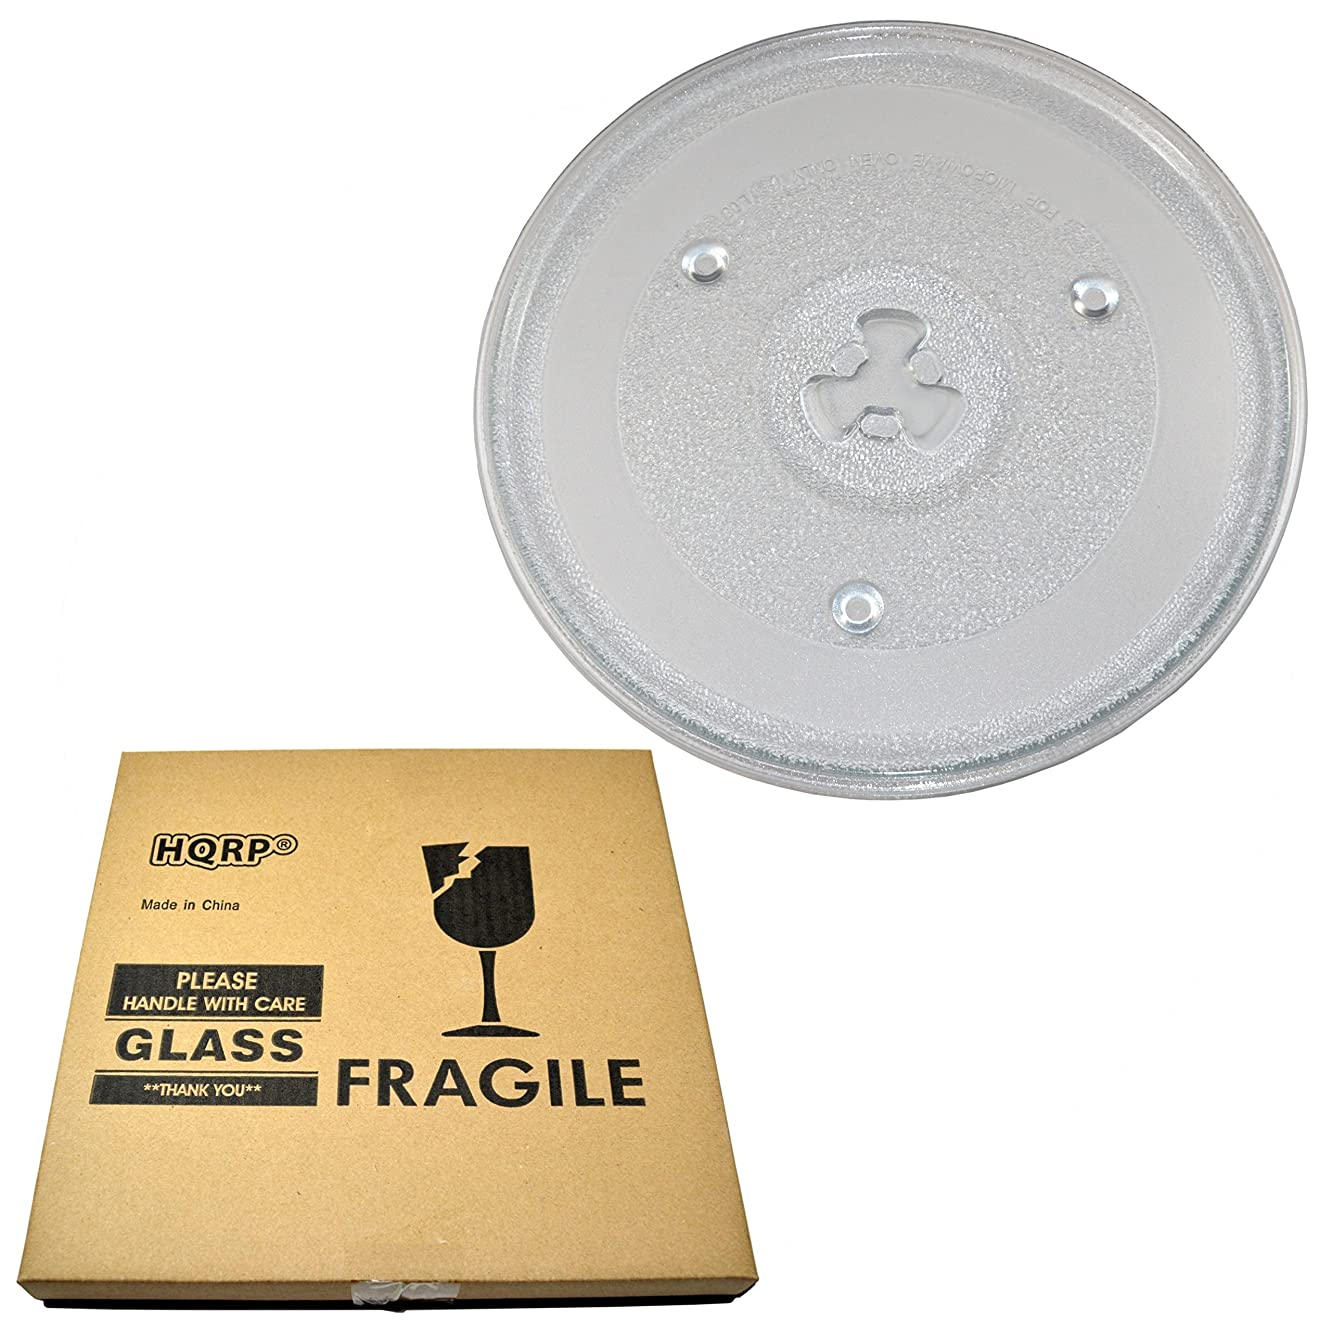 HQRP 10-1/2 inch Glass Turntable Tray for Rival 252100500497 RGST902 Microwave Oven Cooking Plate 270mm + HQRP Coaster